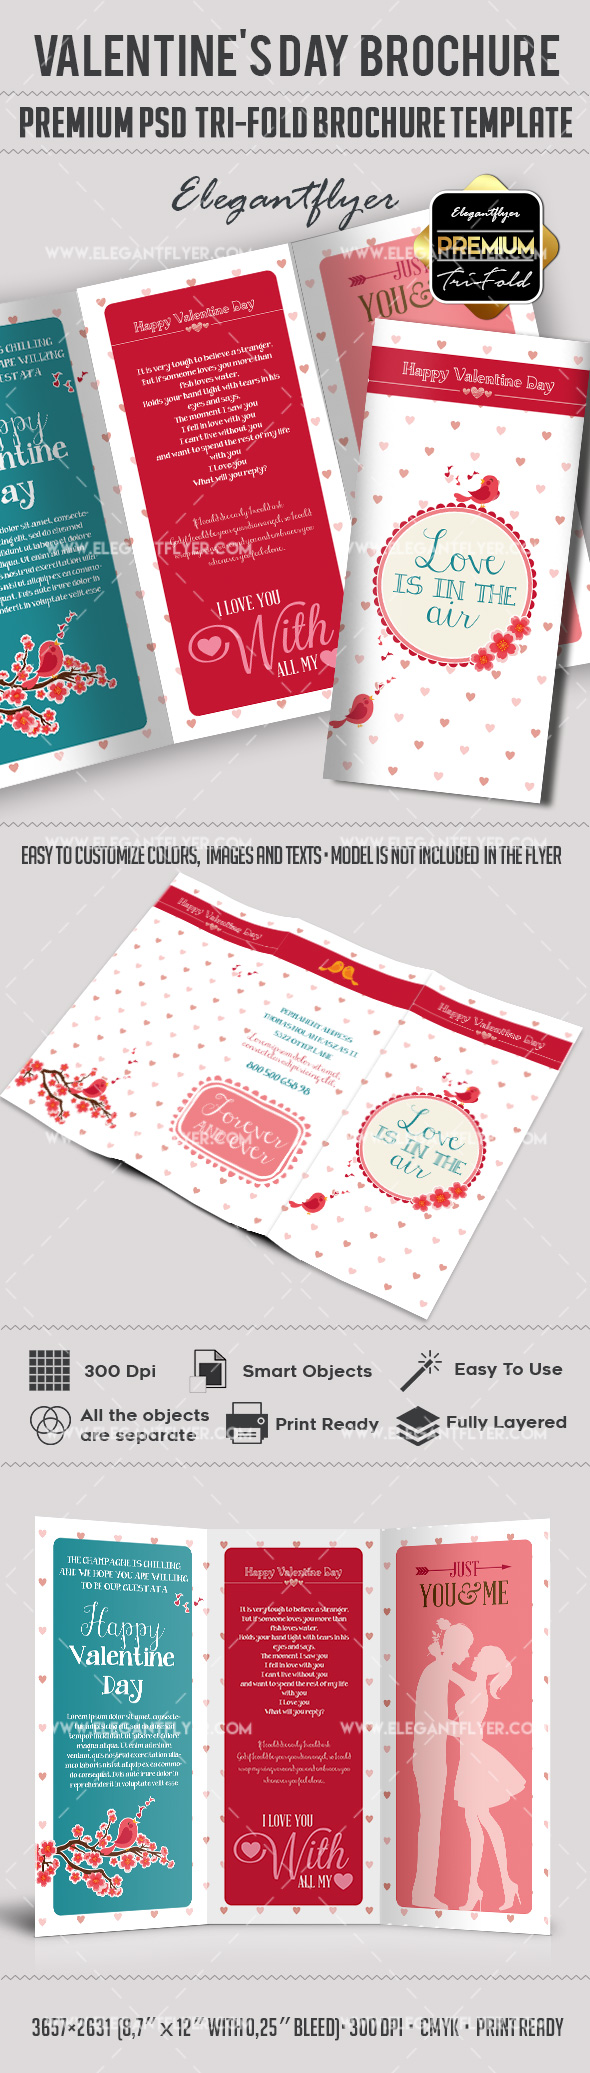 single page brochure templates psd - brochure for valentines day by elegantflyer